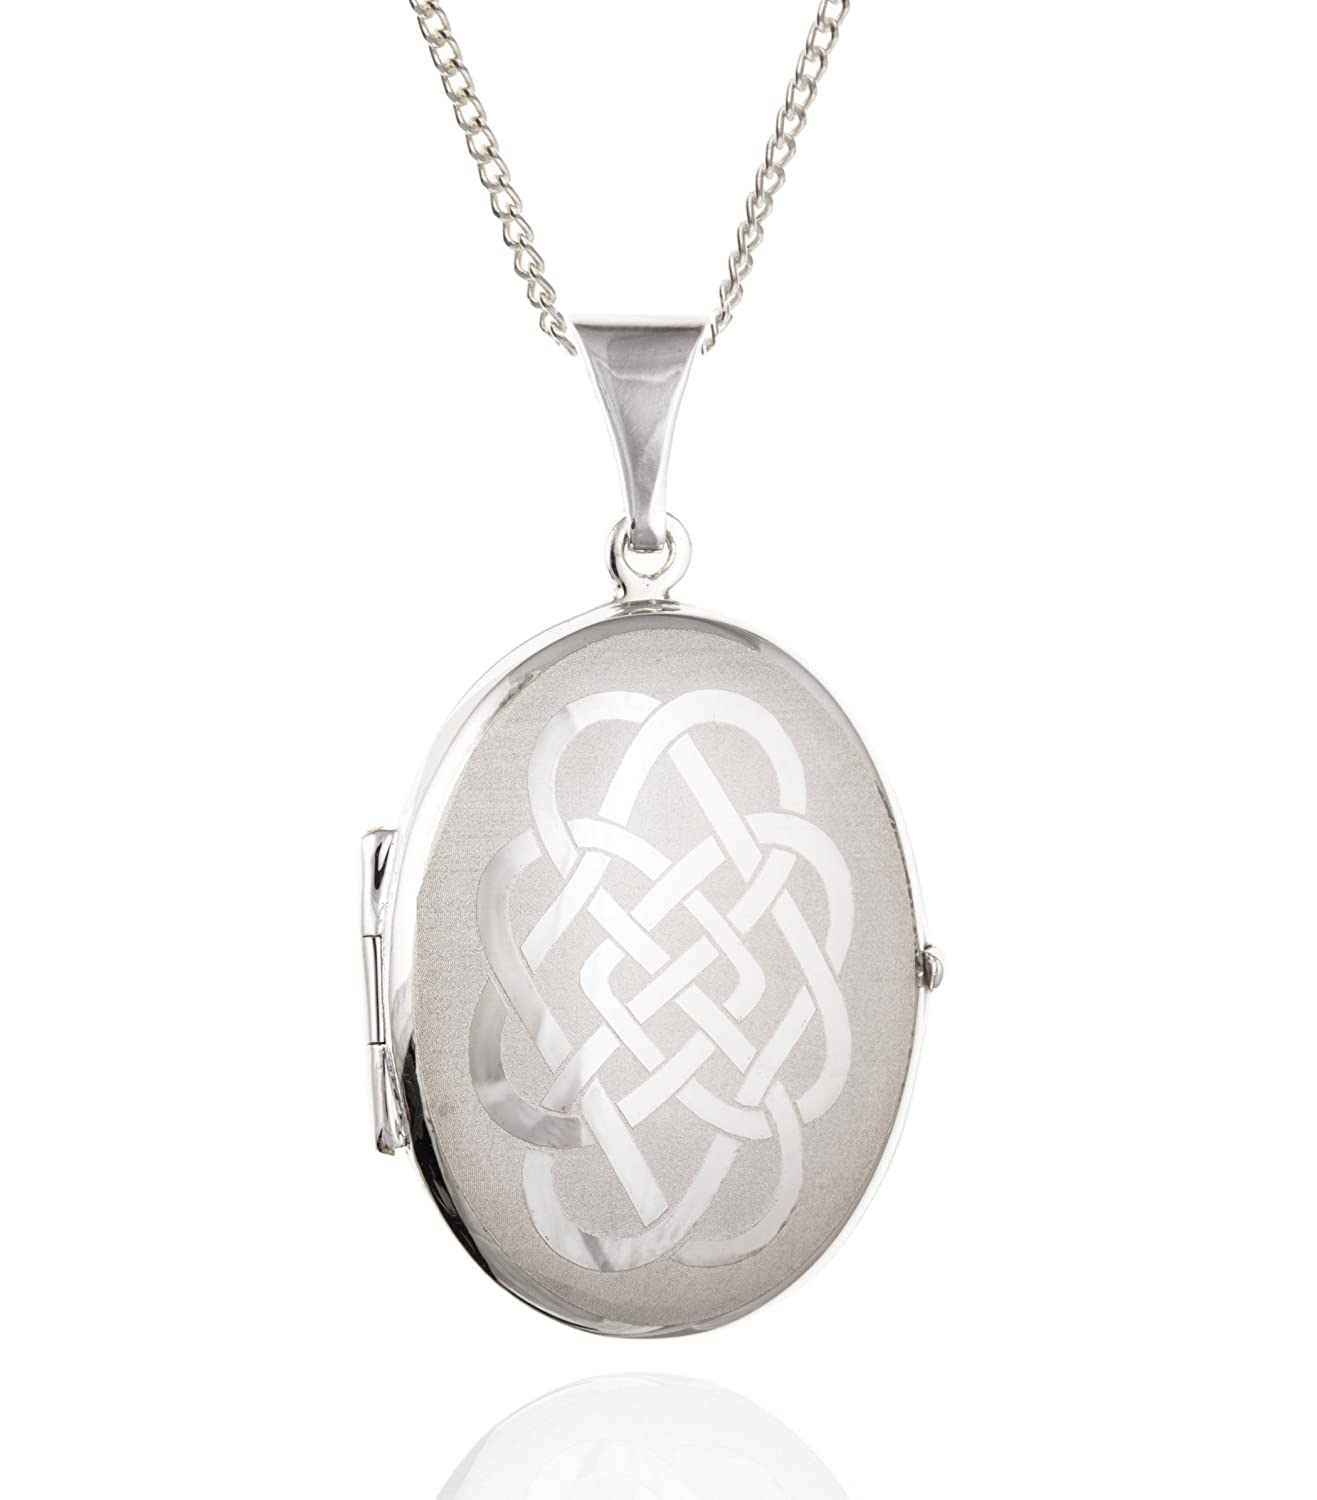 jewelry limoges silver memorial celtic lockets locket necklace sterling engraved